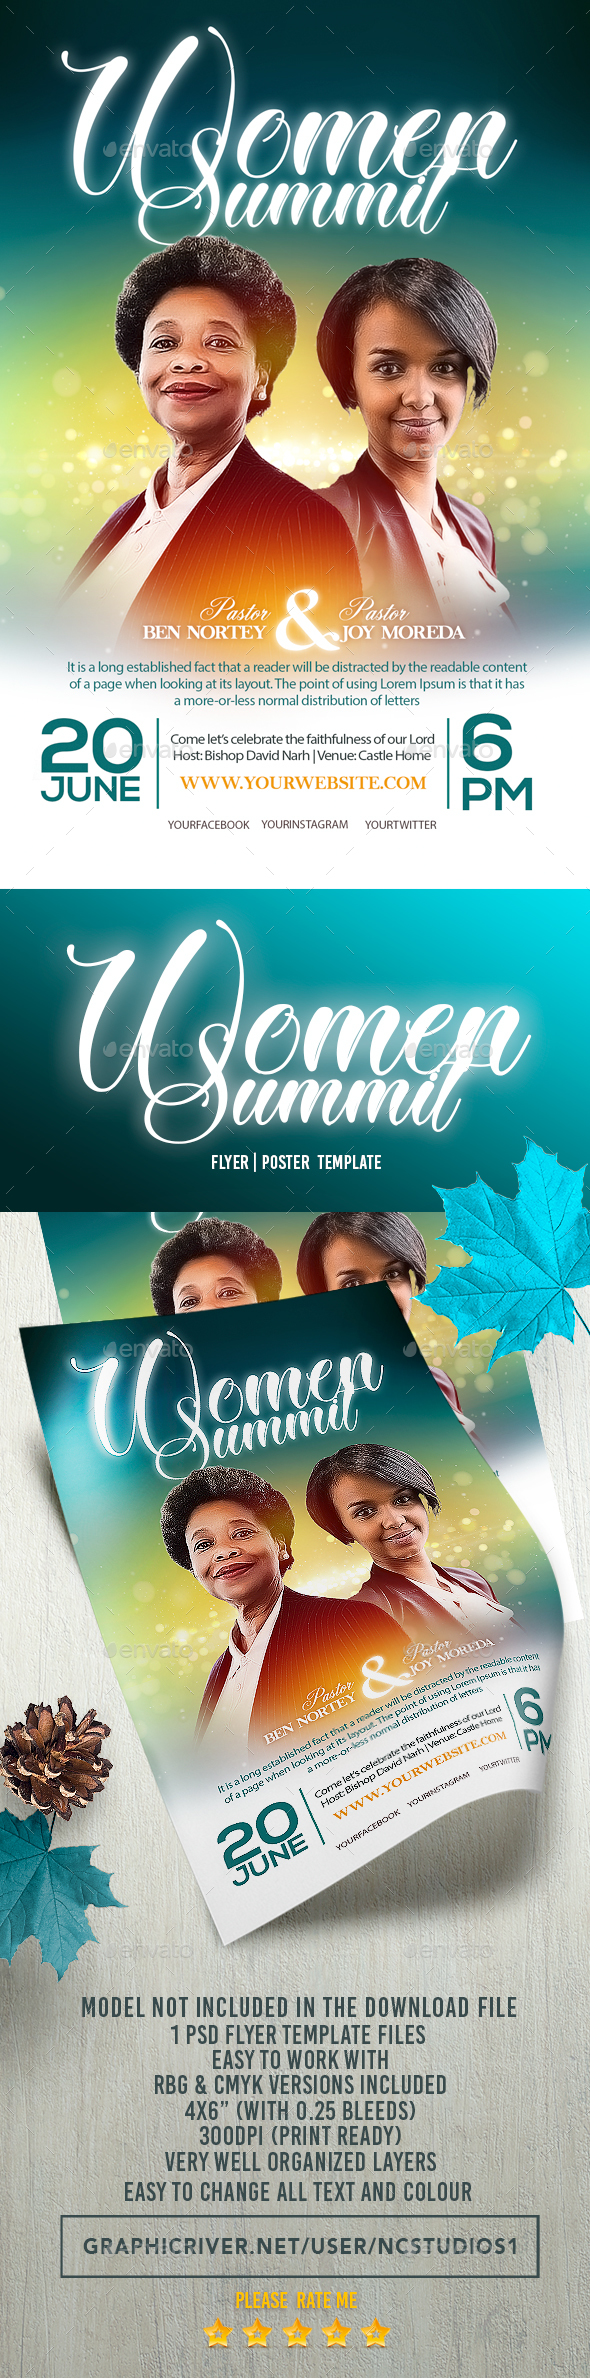 Women Summit Flyer Template - Flyers Print Templates